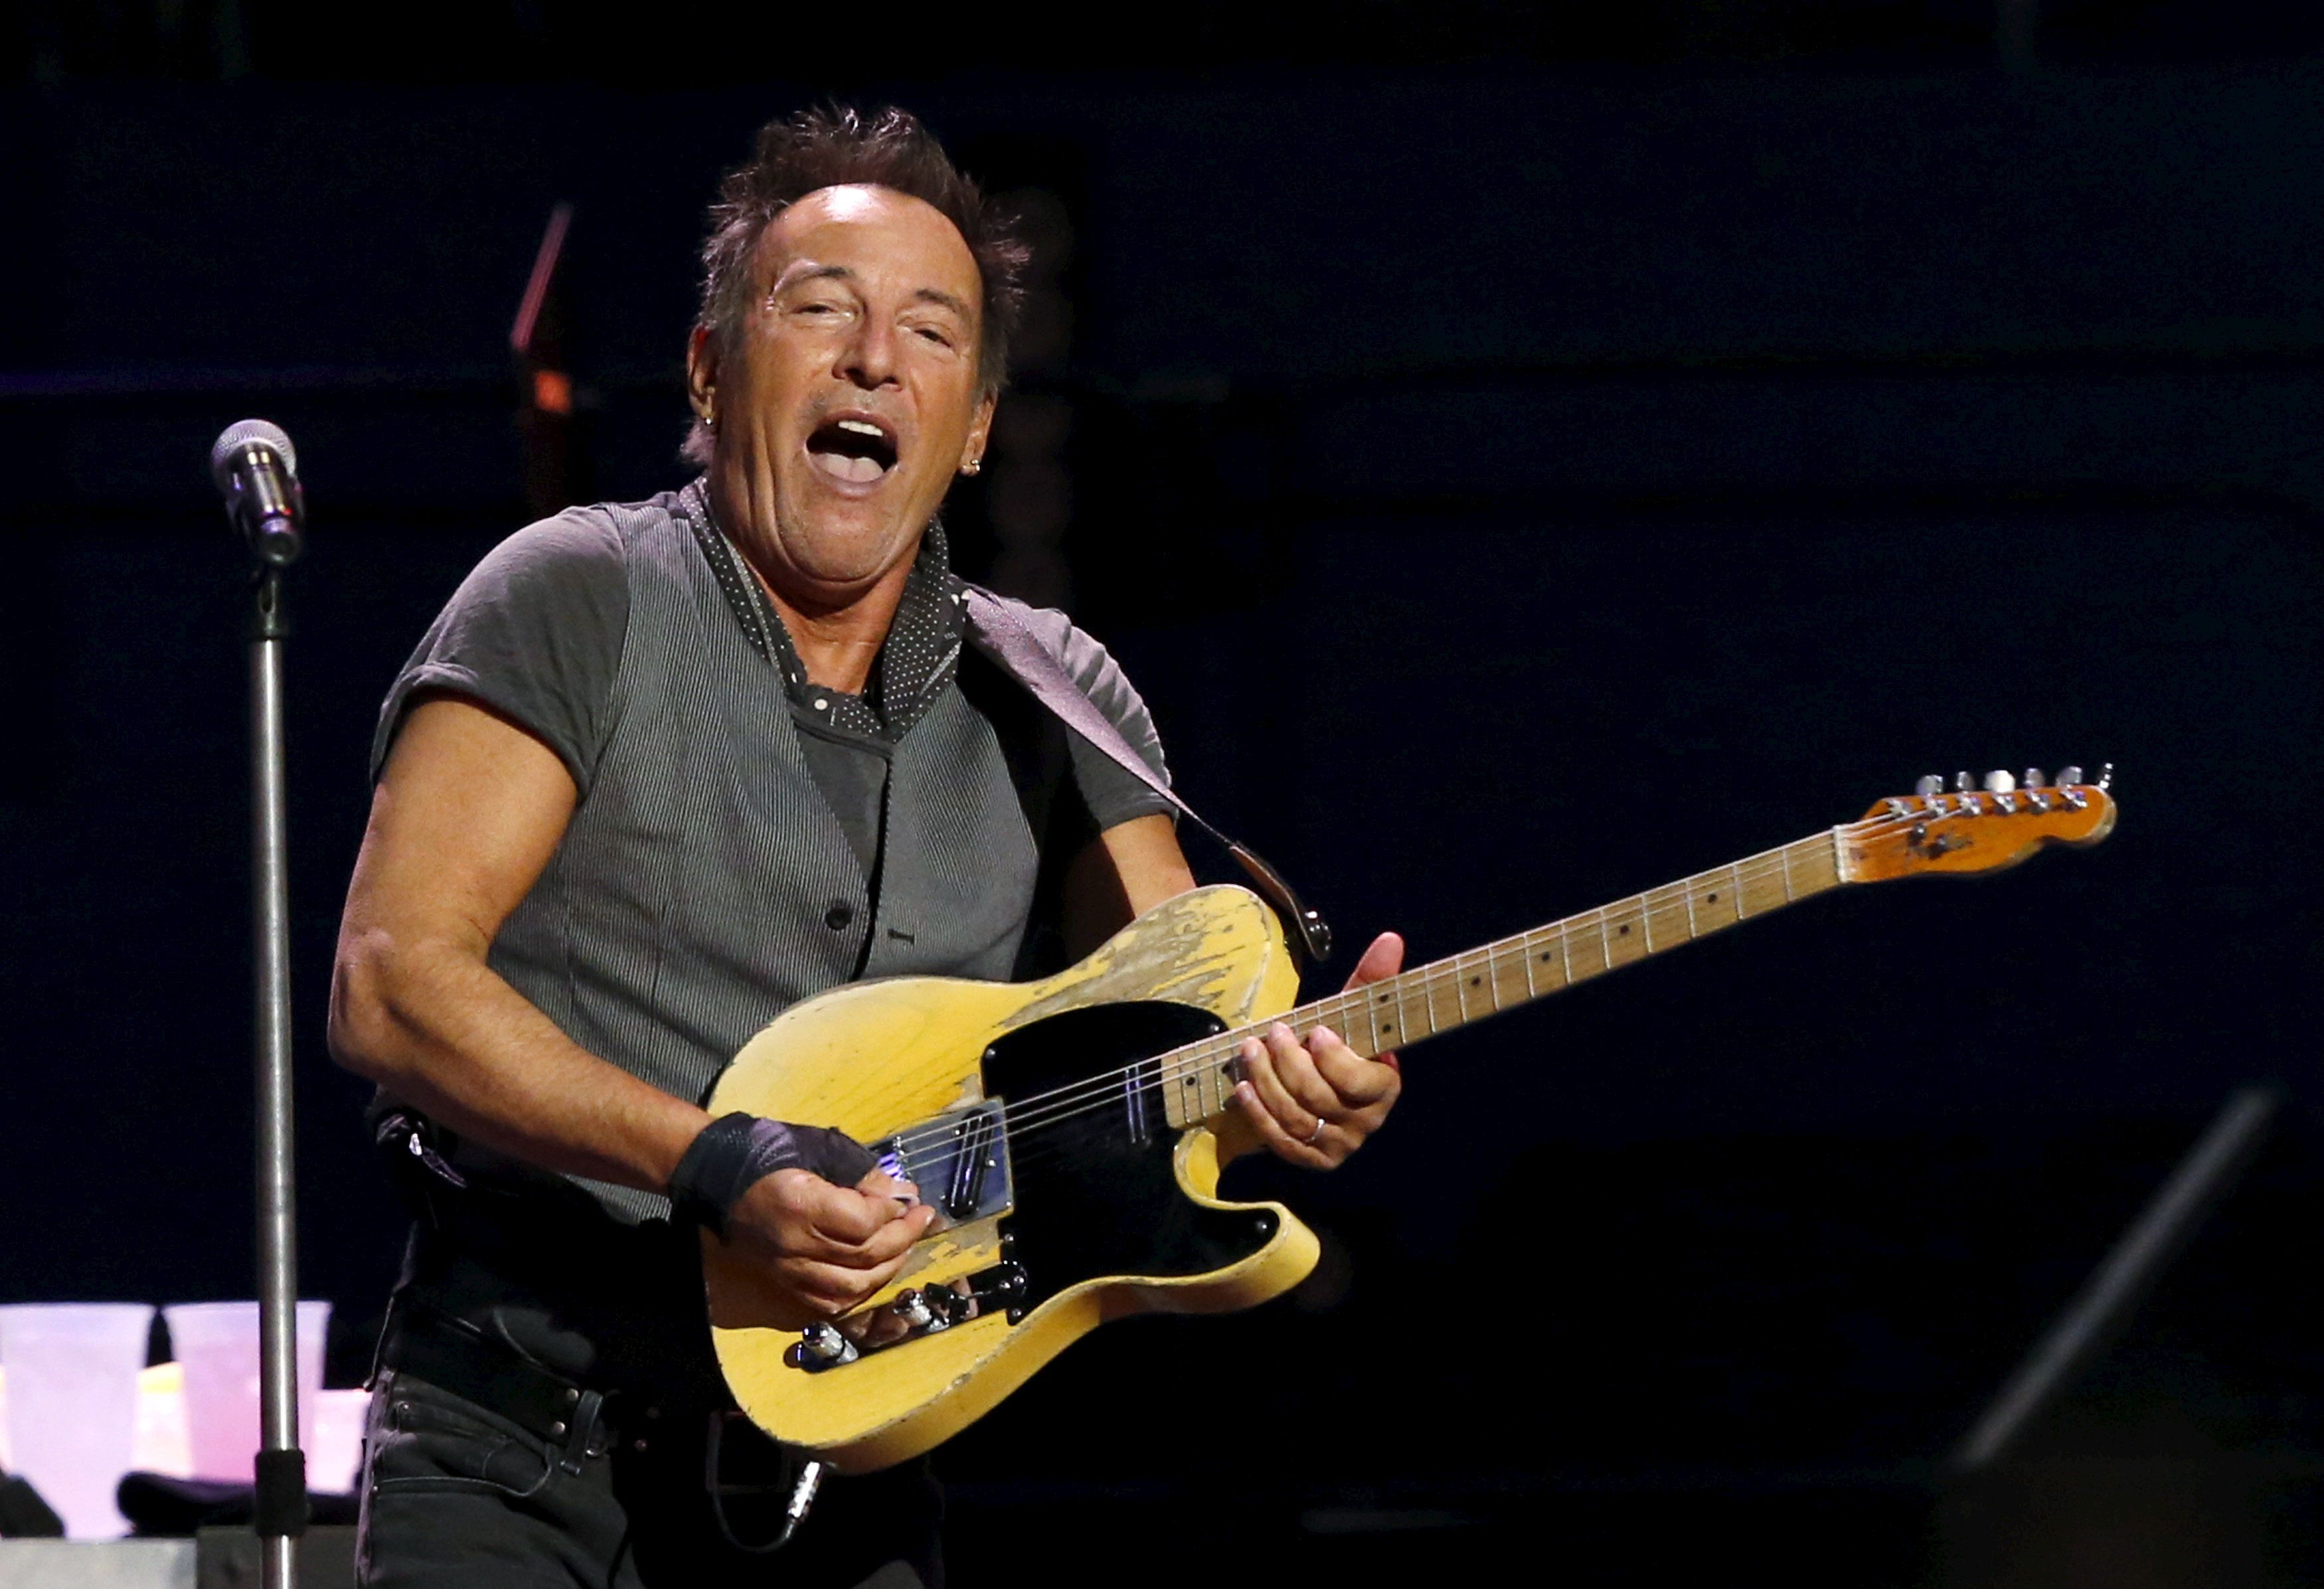 Bruce Springsteen performs during The River Tour at the LA Memorial Sports Arena in Los Angeles, California March 17, 2016.    REUTERS/Mario Anzuoni